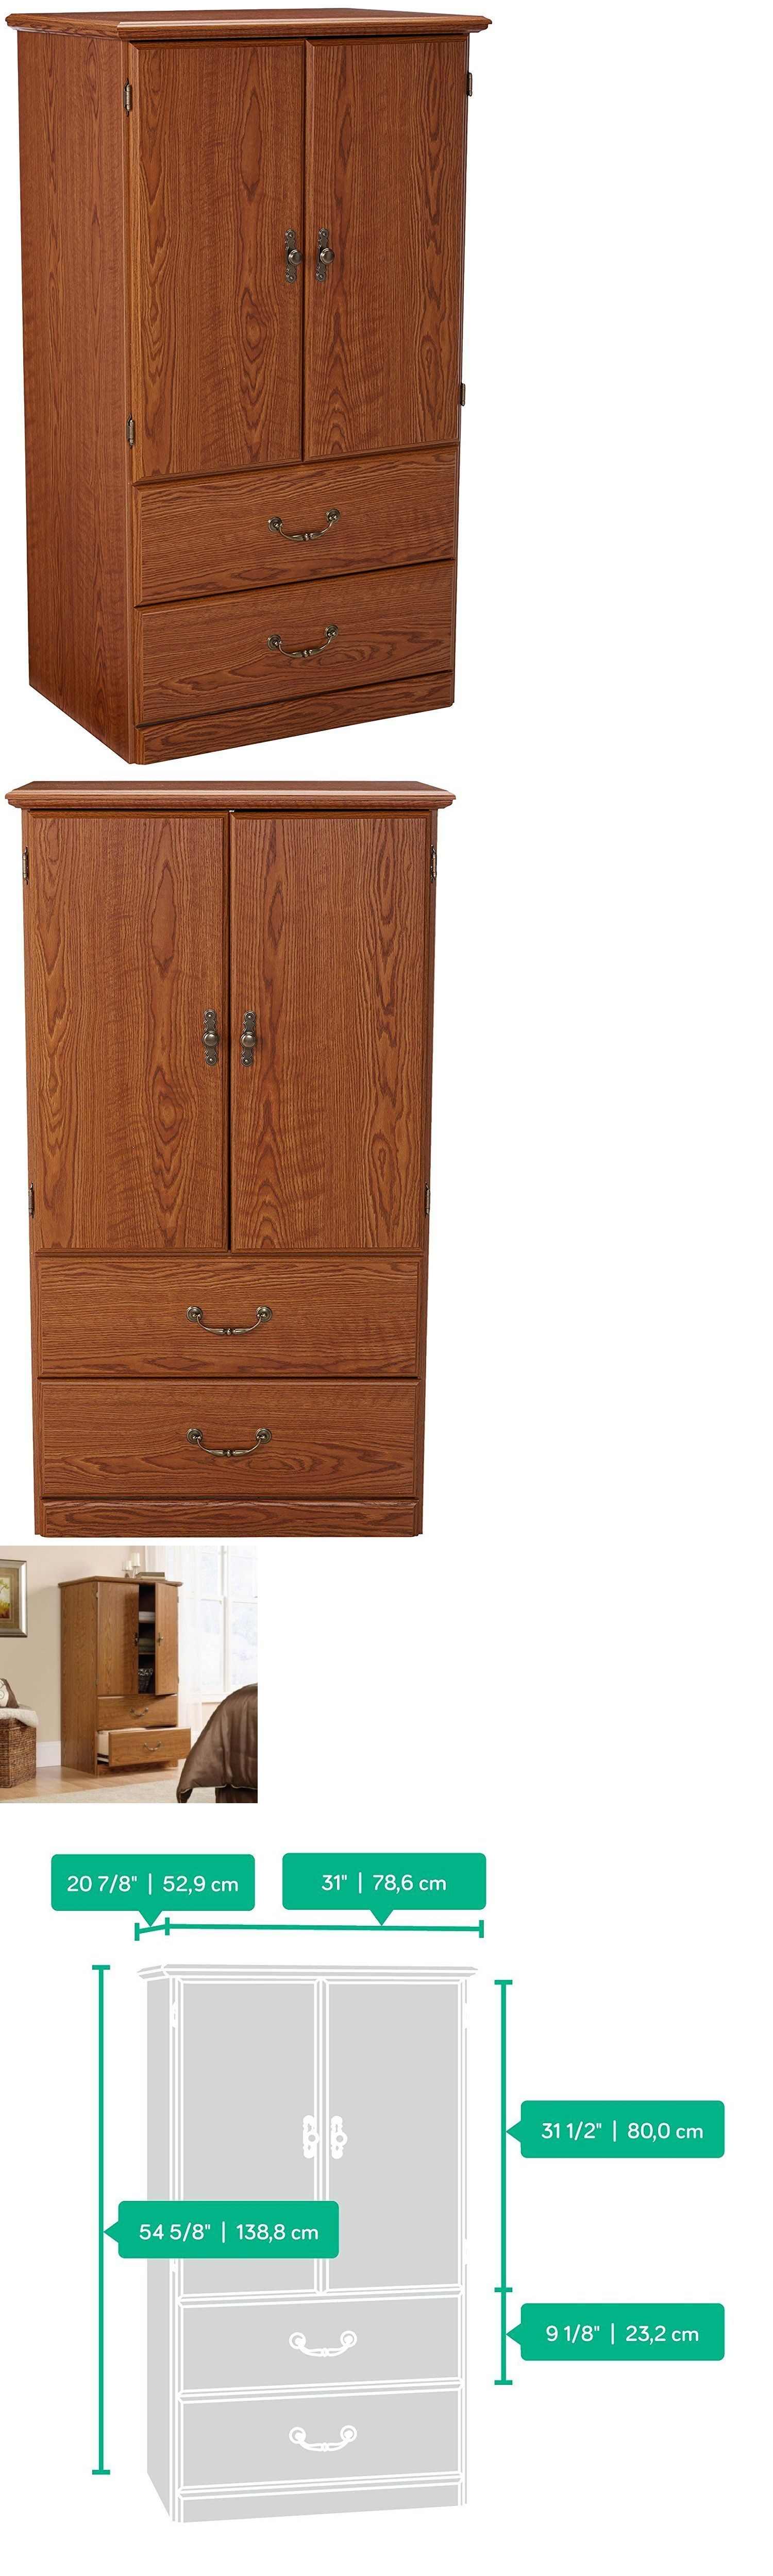 Armoires And Wardrobes 103430 Wardrobe Armoire Bedroom Furniture